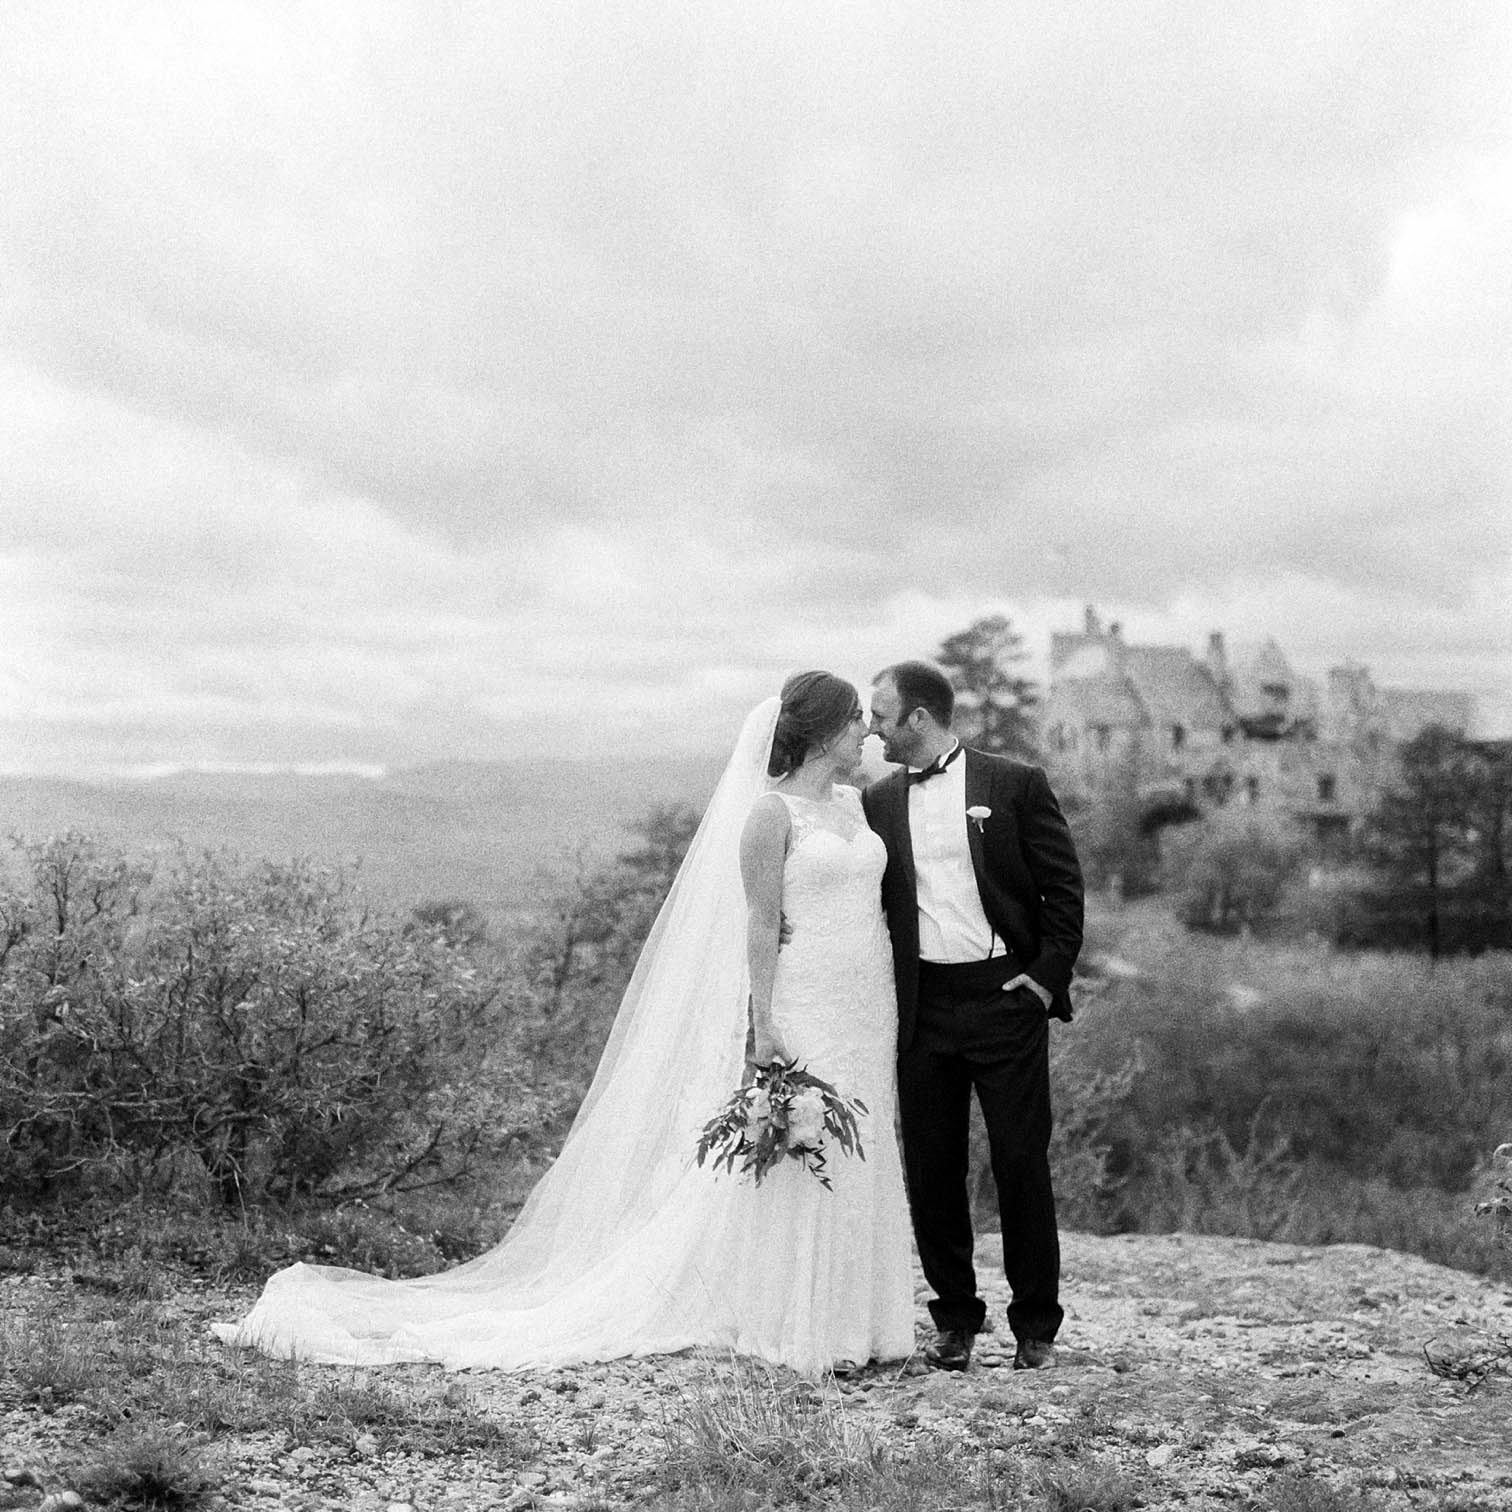 Mountain Weddings, Danielle DeFiore Photographer, Bride and Groom Portraits, Colorado Wedding Photographers, Castle Wedding, Classic Black Tie Wedding, Film Photographer, Colorado Weddings, Black and White Photography